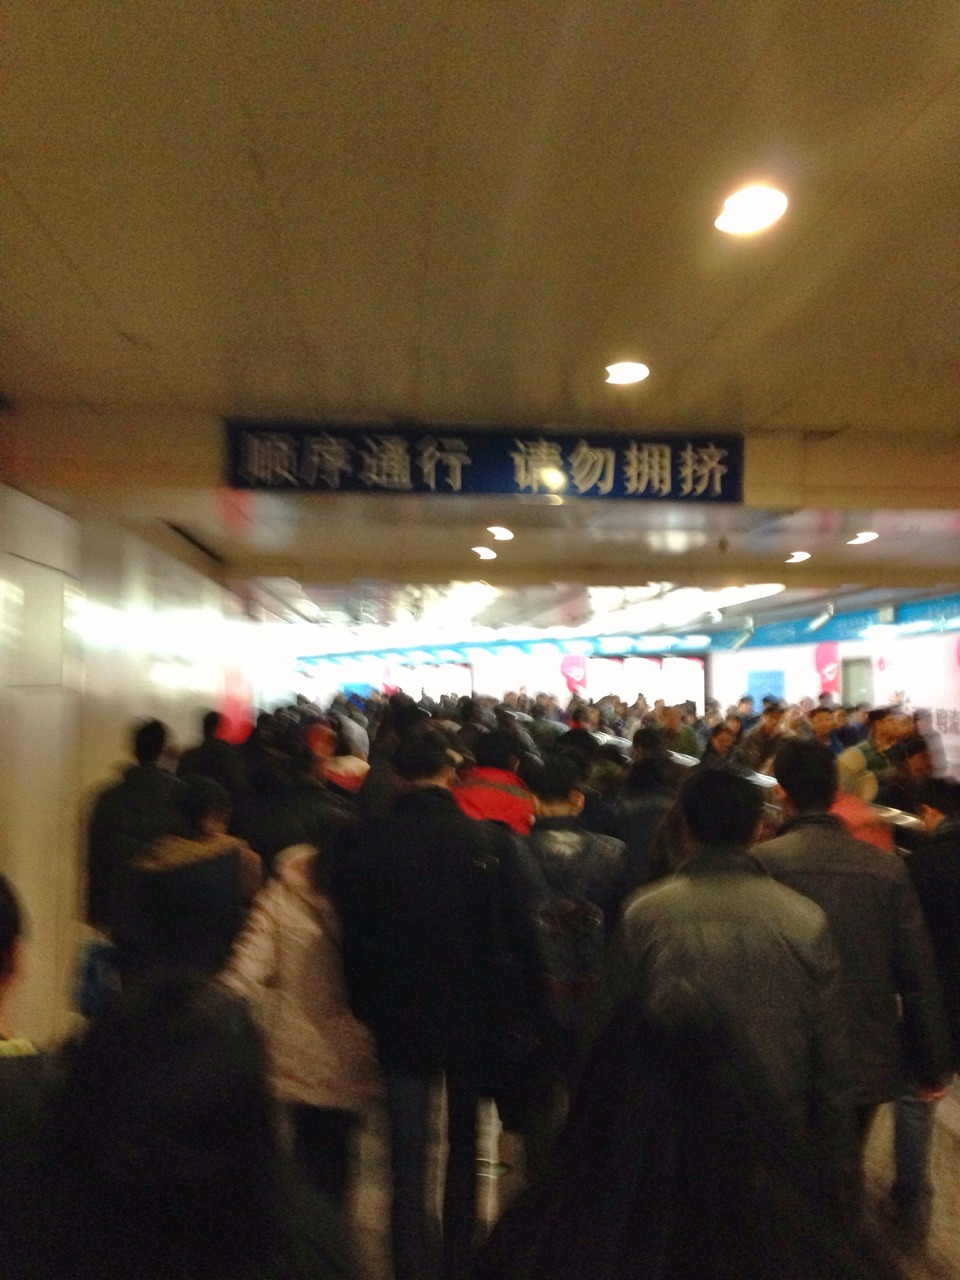 It's a terrible foto, but this gives you an idea of how crazy the subway is at night between line 10 and 1 @ Guomao. Literally wall to wall packed